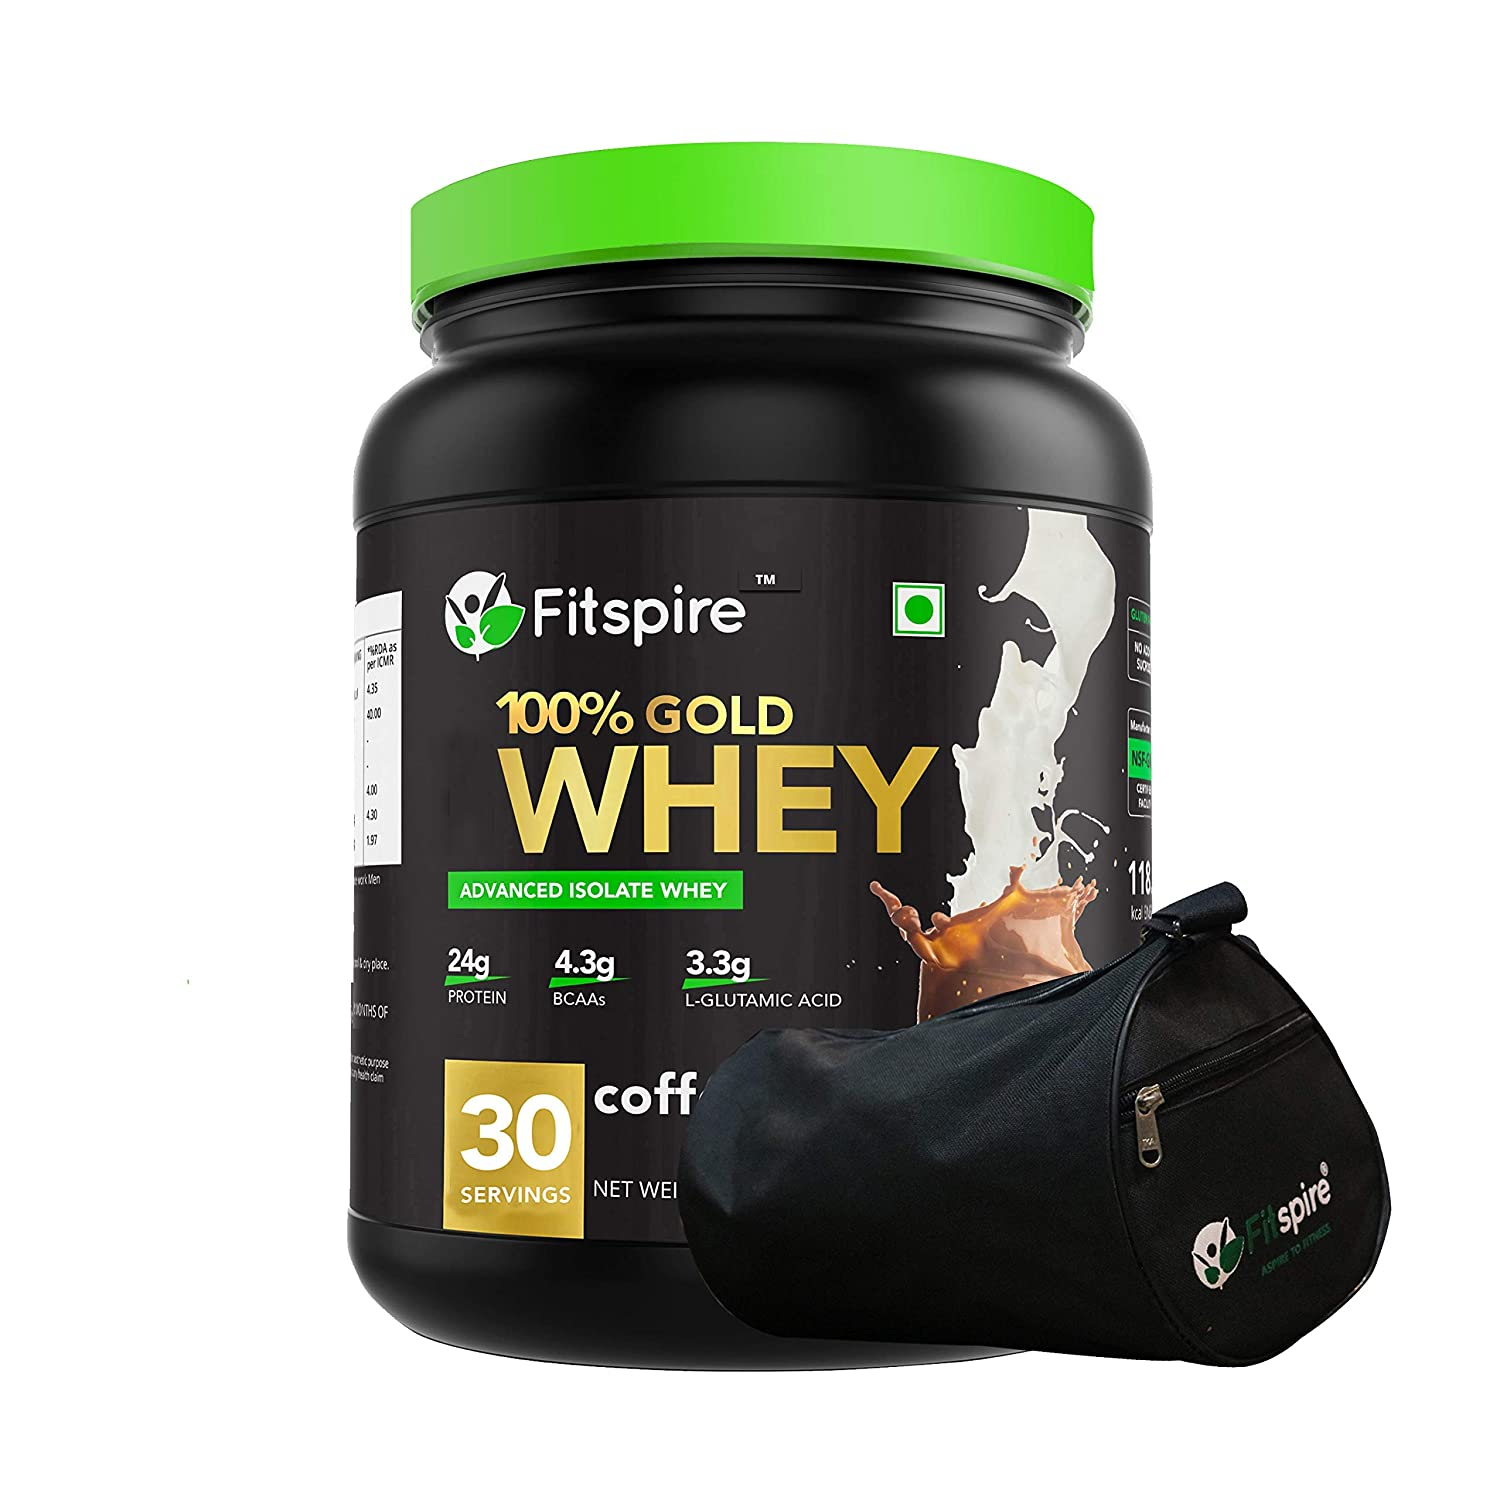 Fitspire 100% Whey Protein Gold with Gym Bag | No Added Sugar, Low Carbs, Zero Cholesterol & Gluten Free | 1kg